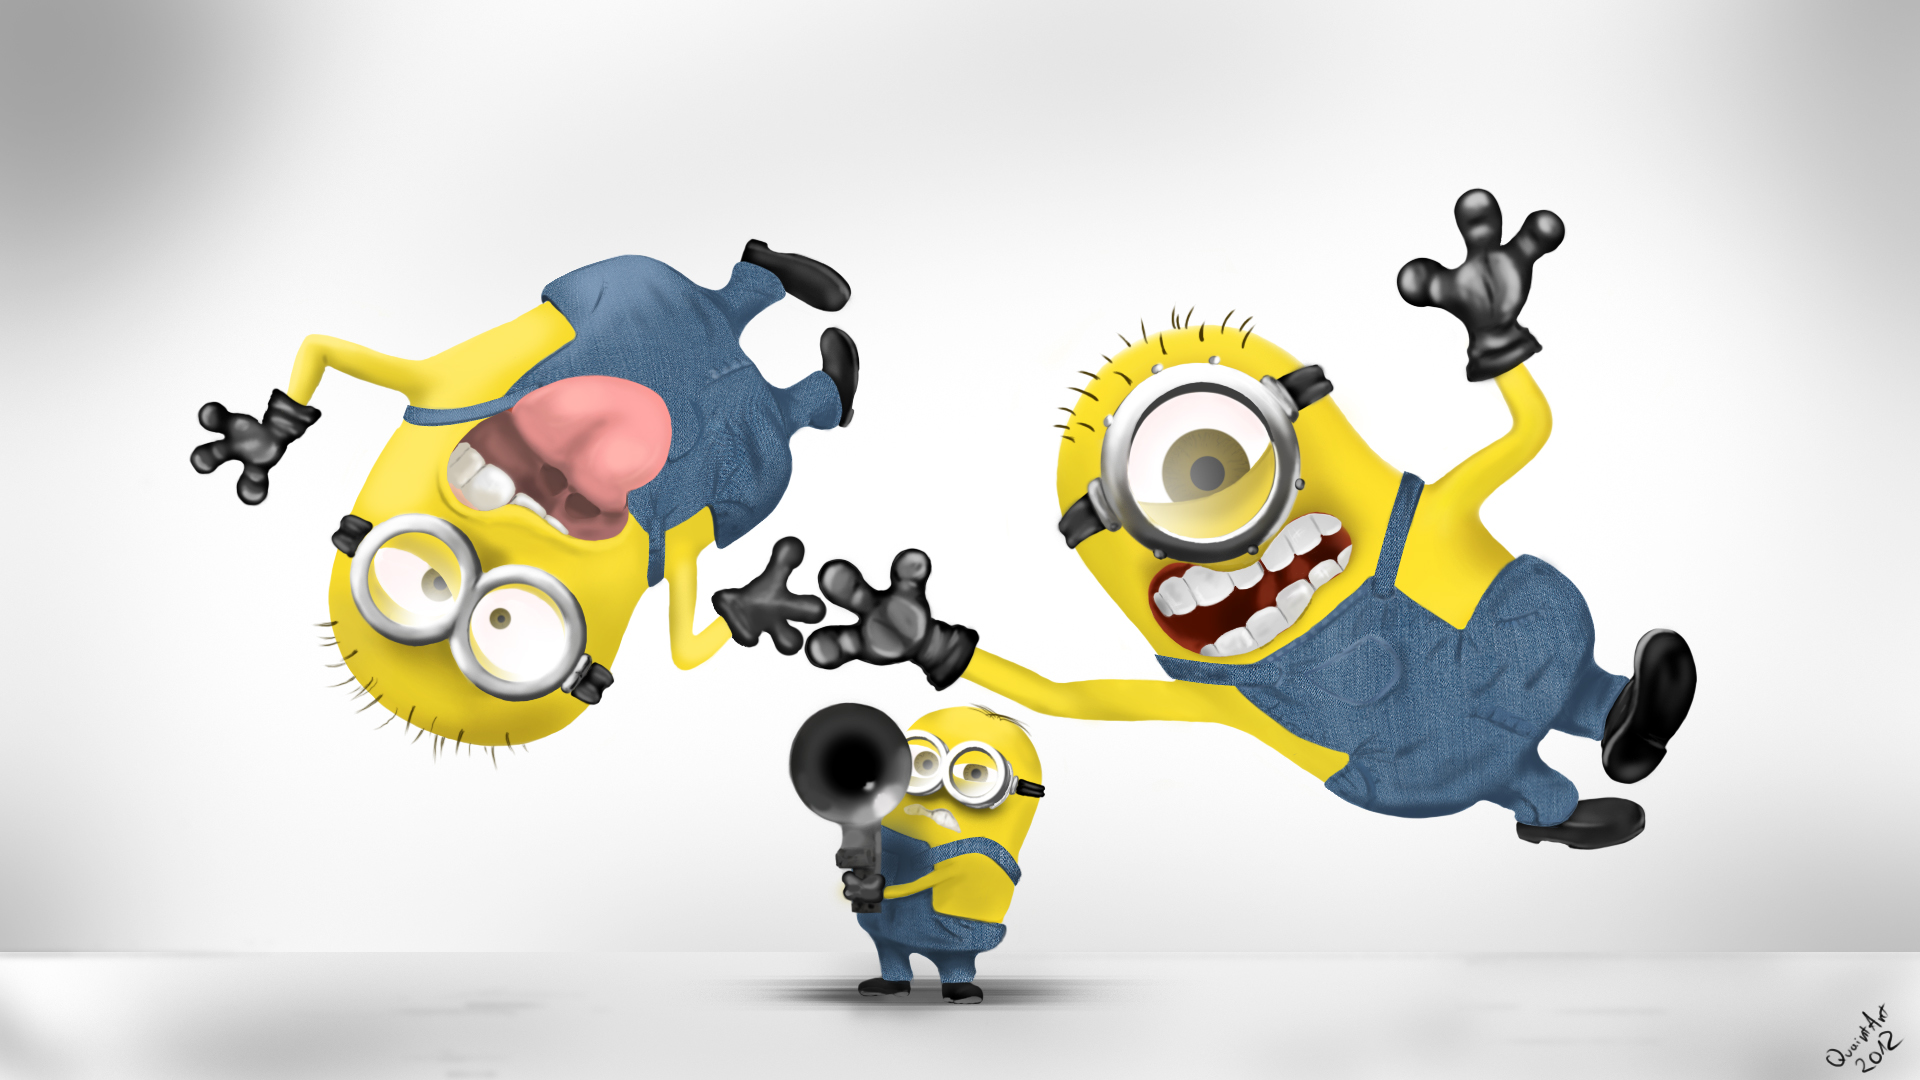 despicable me minions wallpapers - photo #7